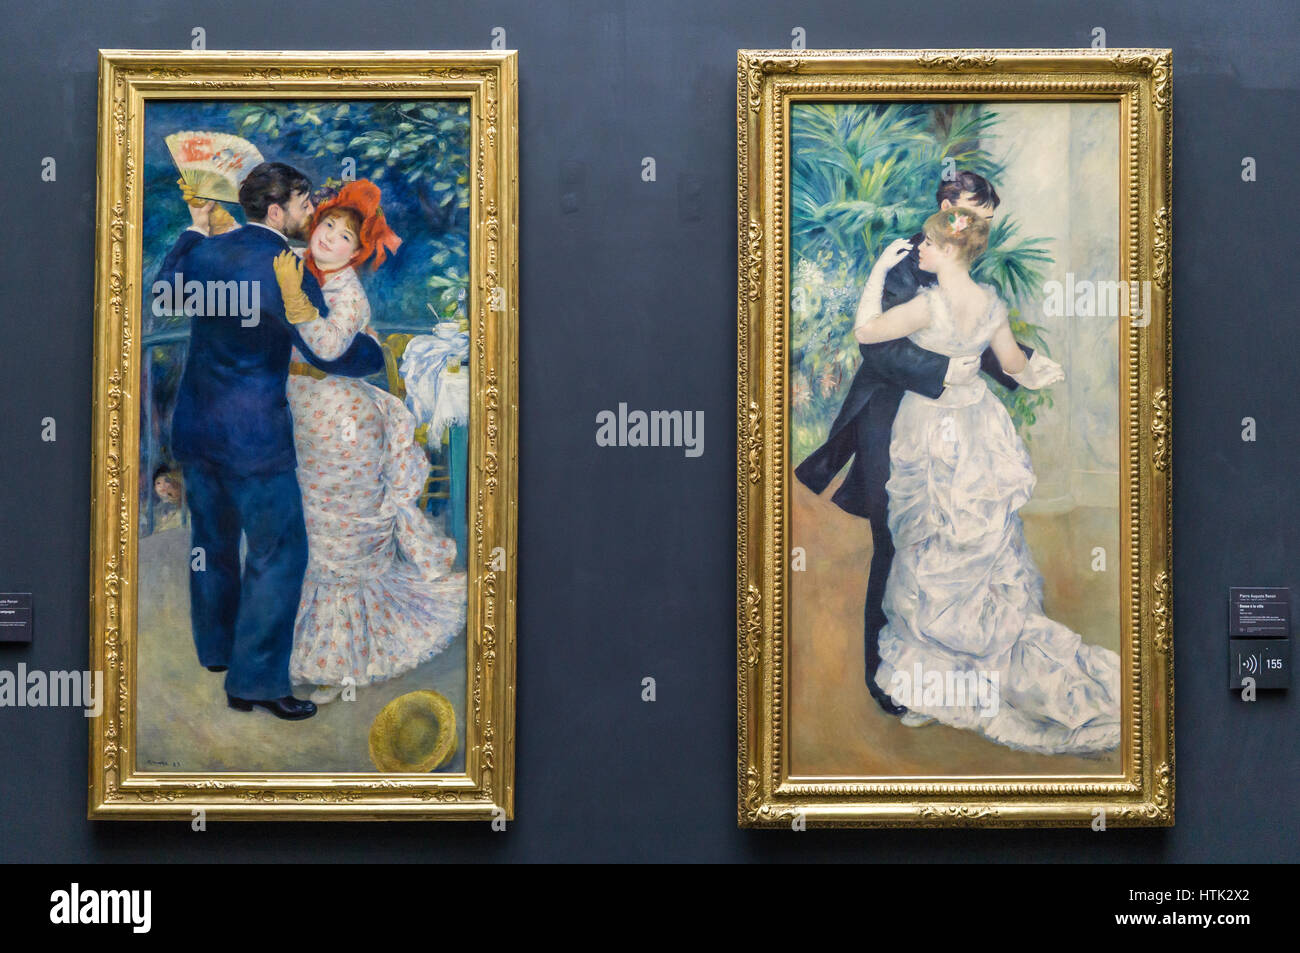 Impressionist painting at the Musee d'Orsay,Auguste Renoir, Paris, France. - Stock Image